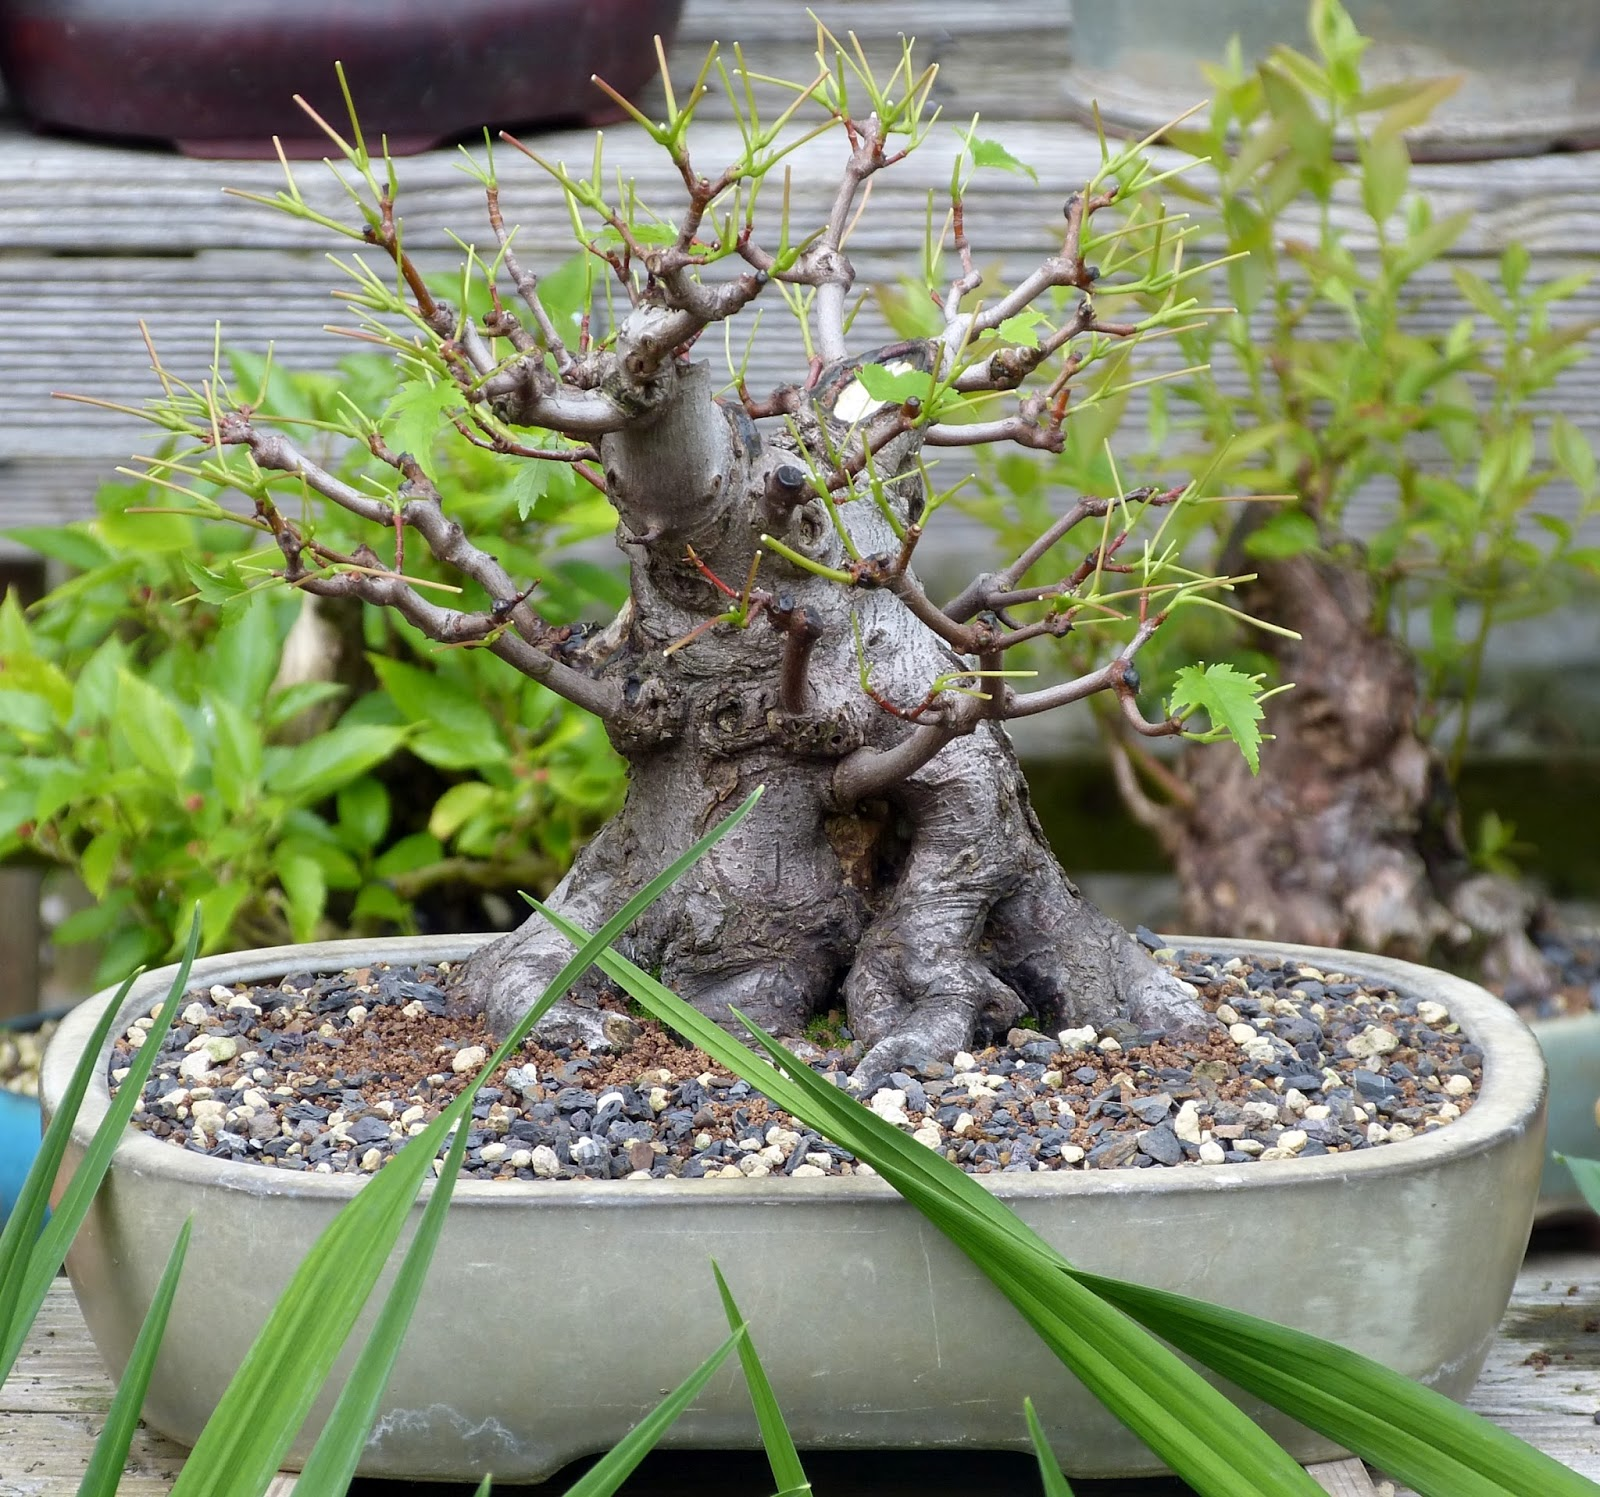 Holger39s Bonsai Blog After Defoliation Acer Rubrum